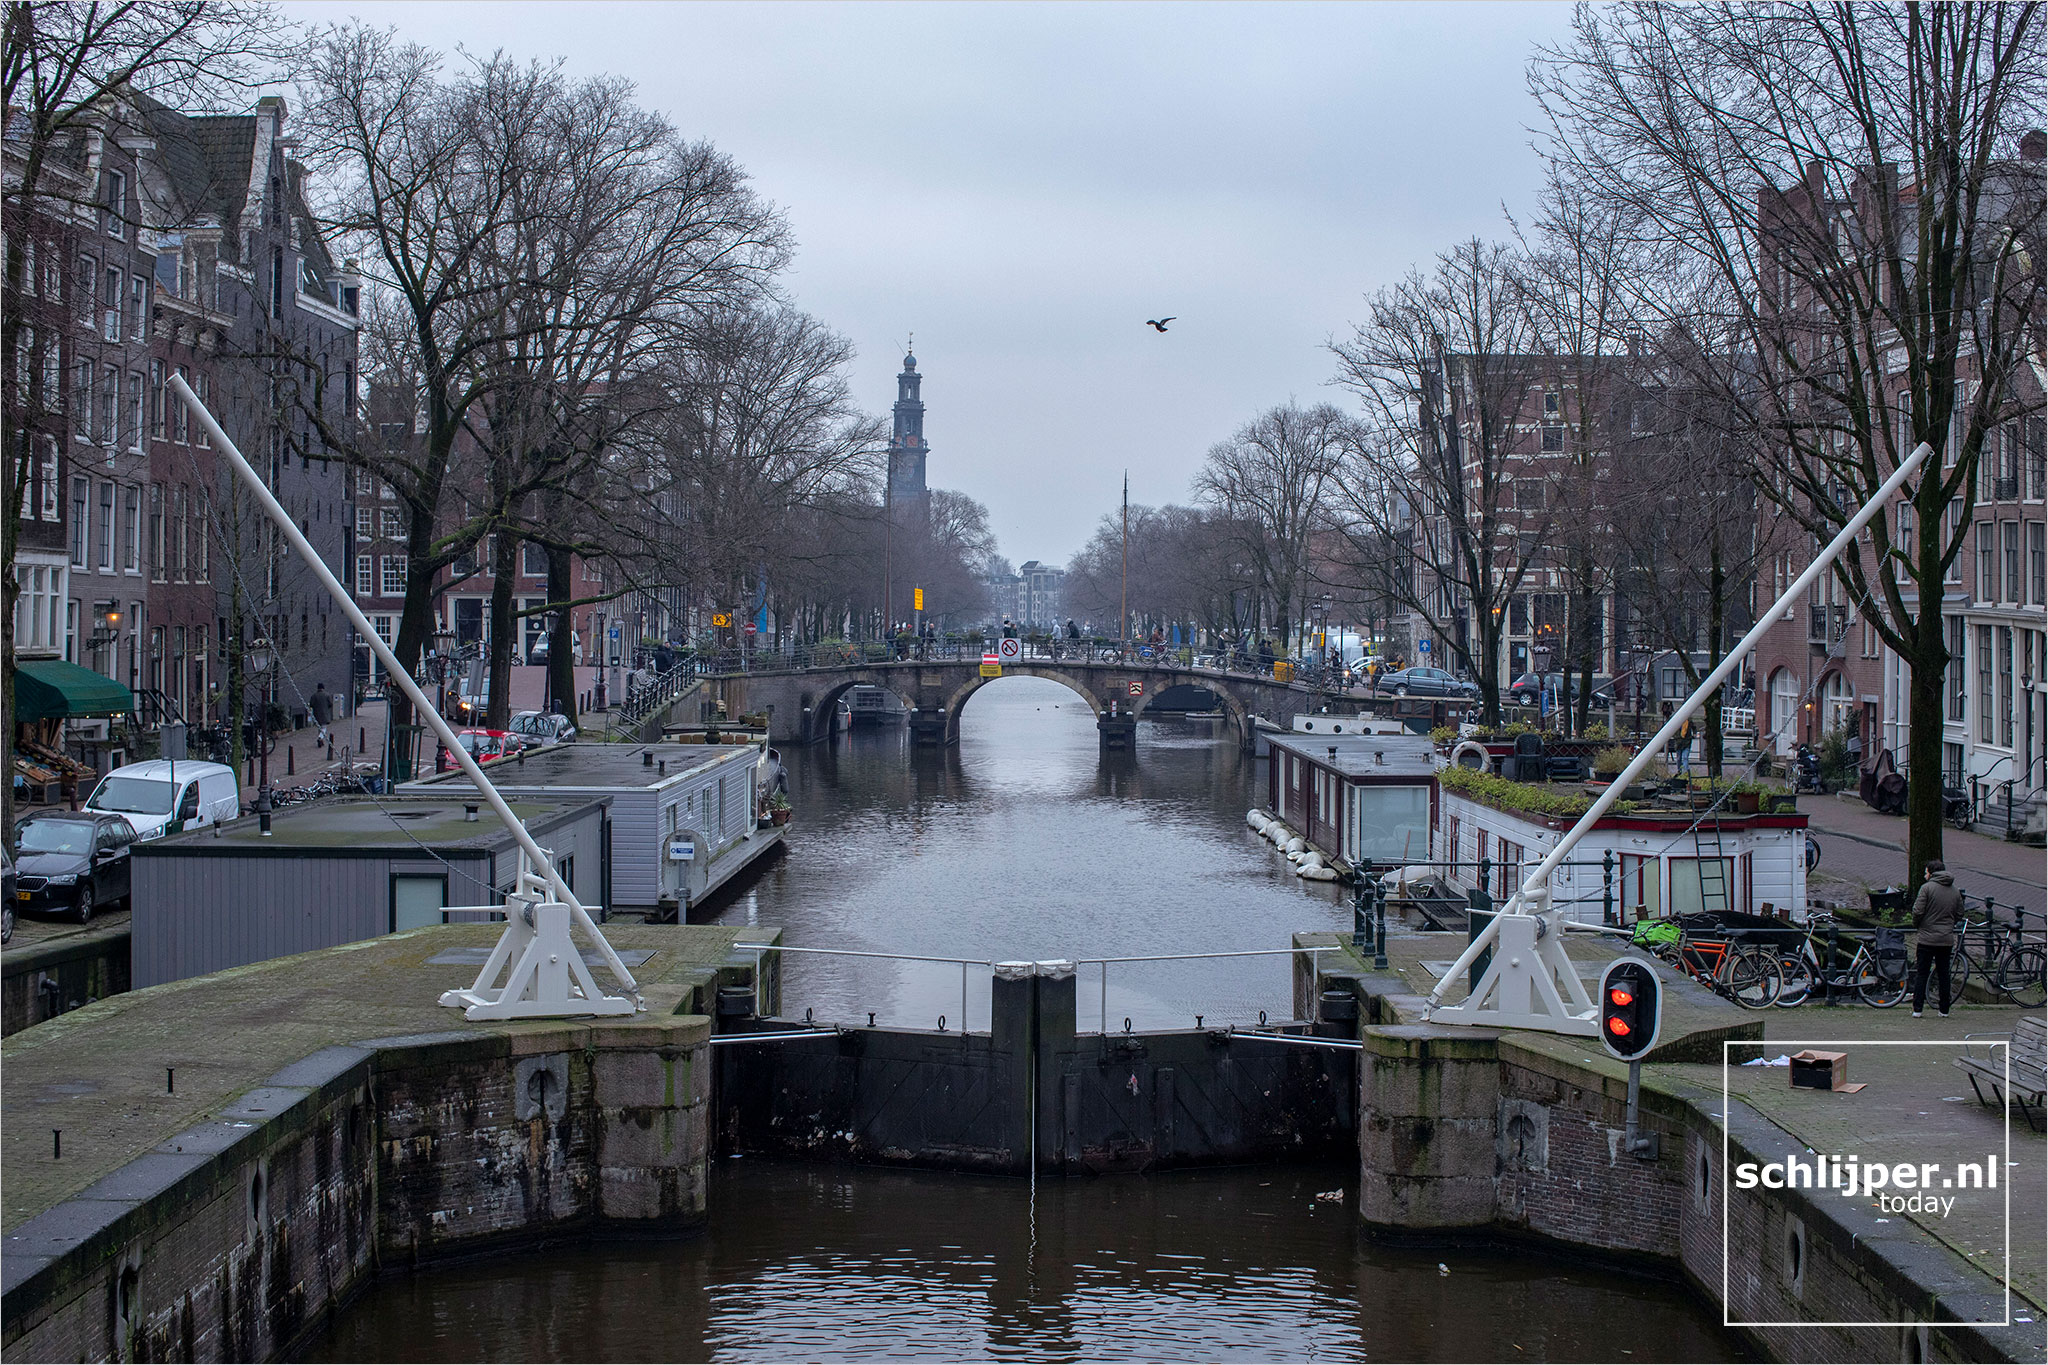 The Netherlands, Amsterdam, 6 februari 2021